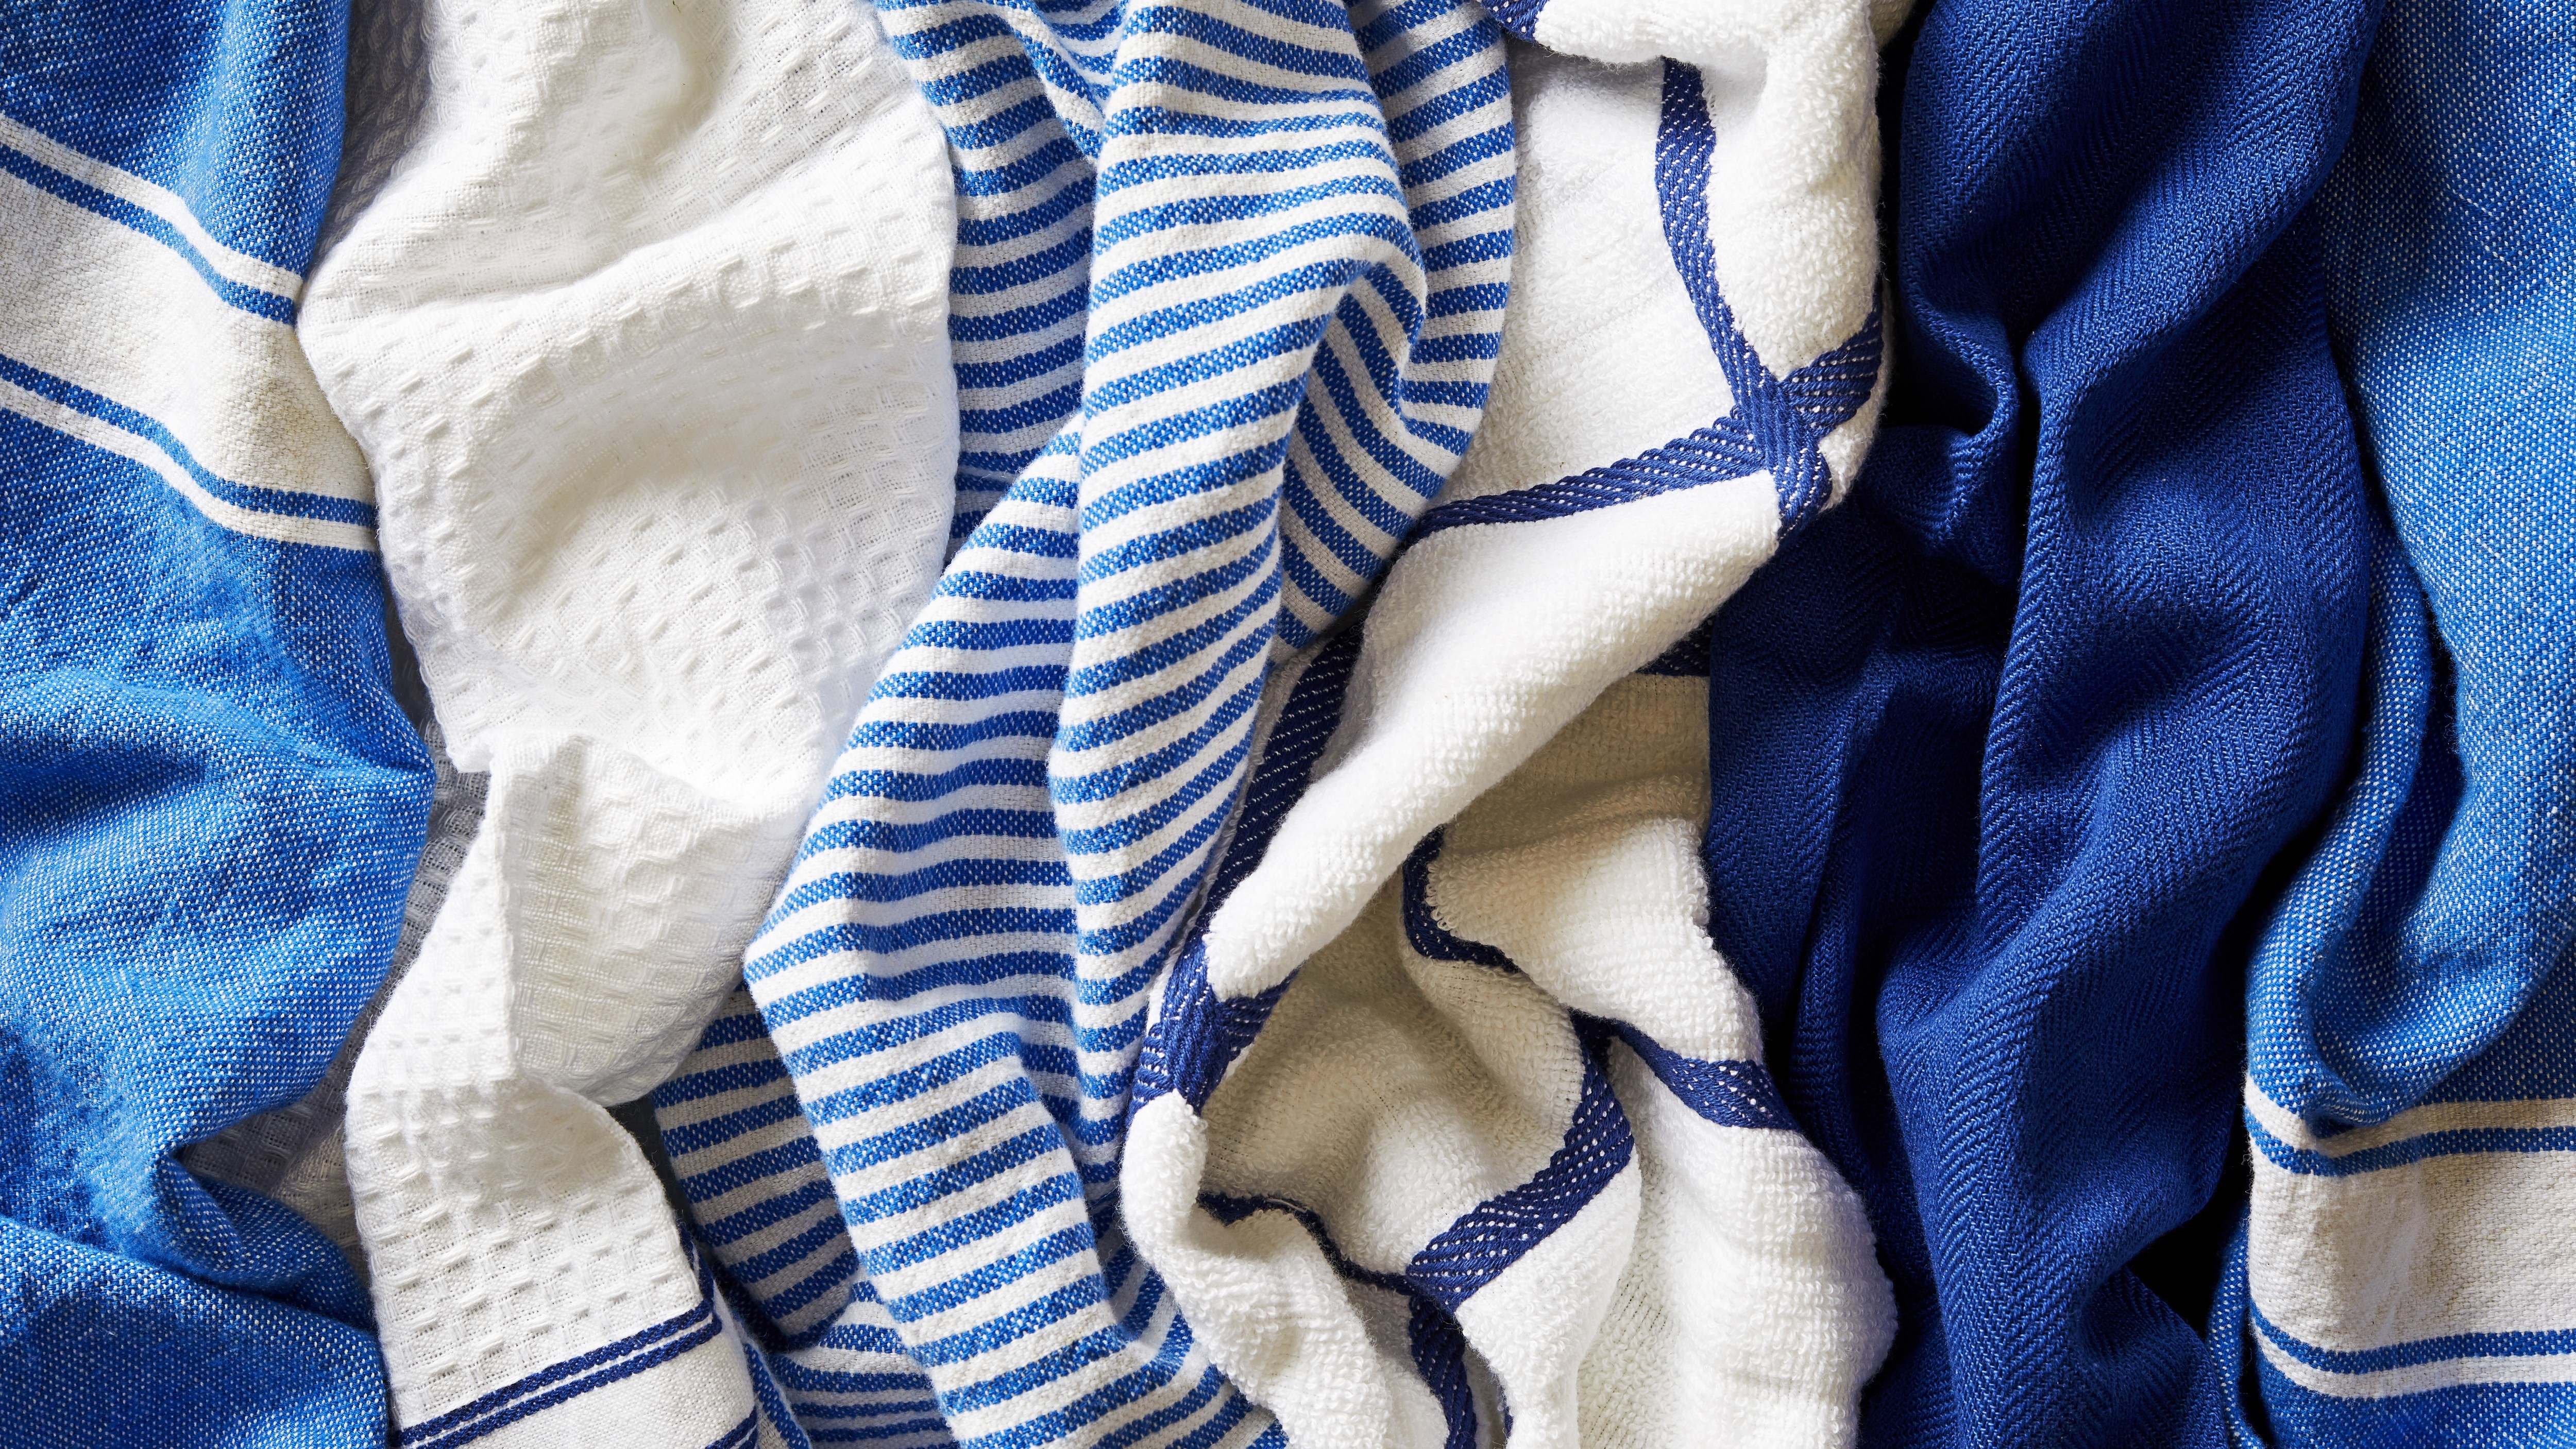 What are the best dish towels to use in the kitchen? - The